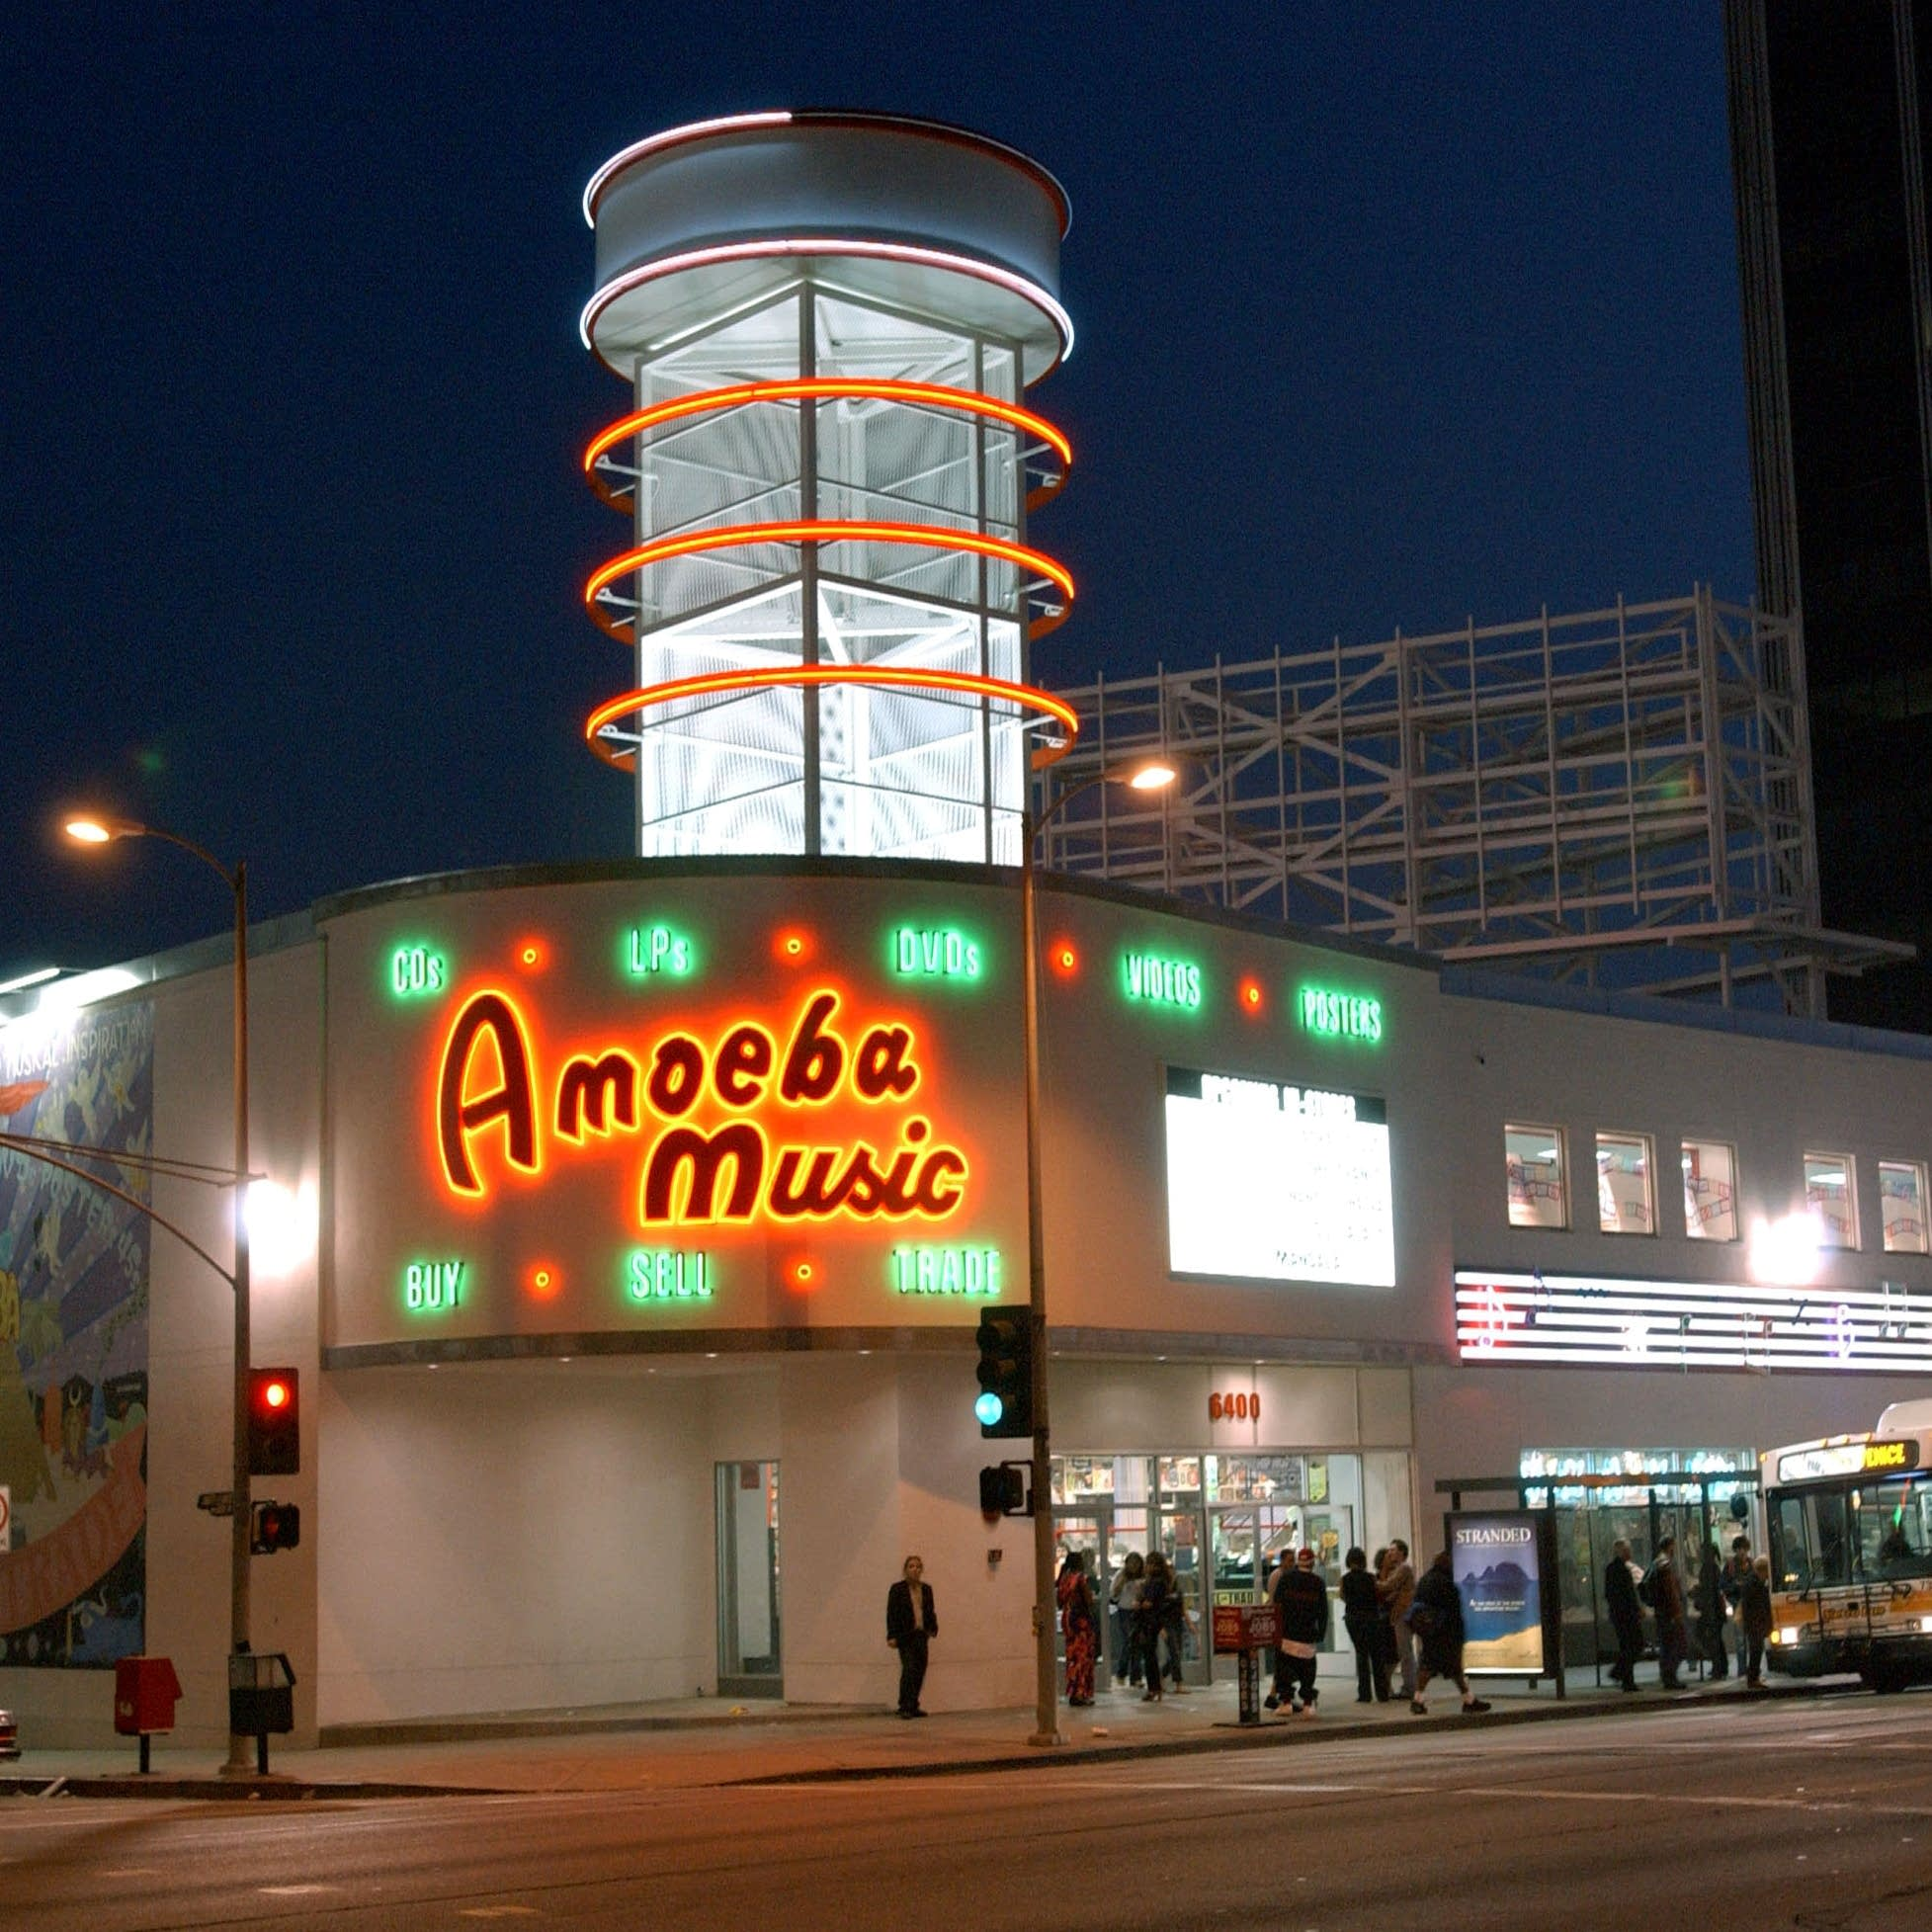 Amoeba Music in Los Angeles, photographed in 2002.